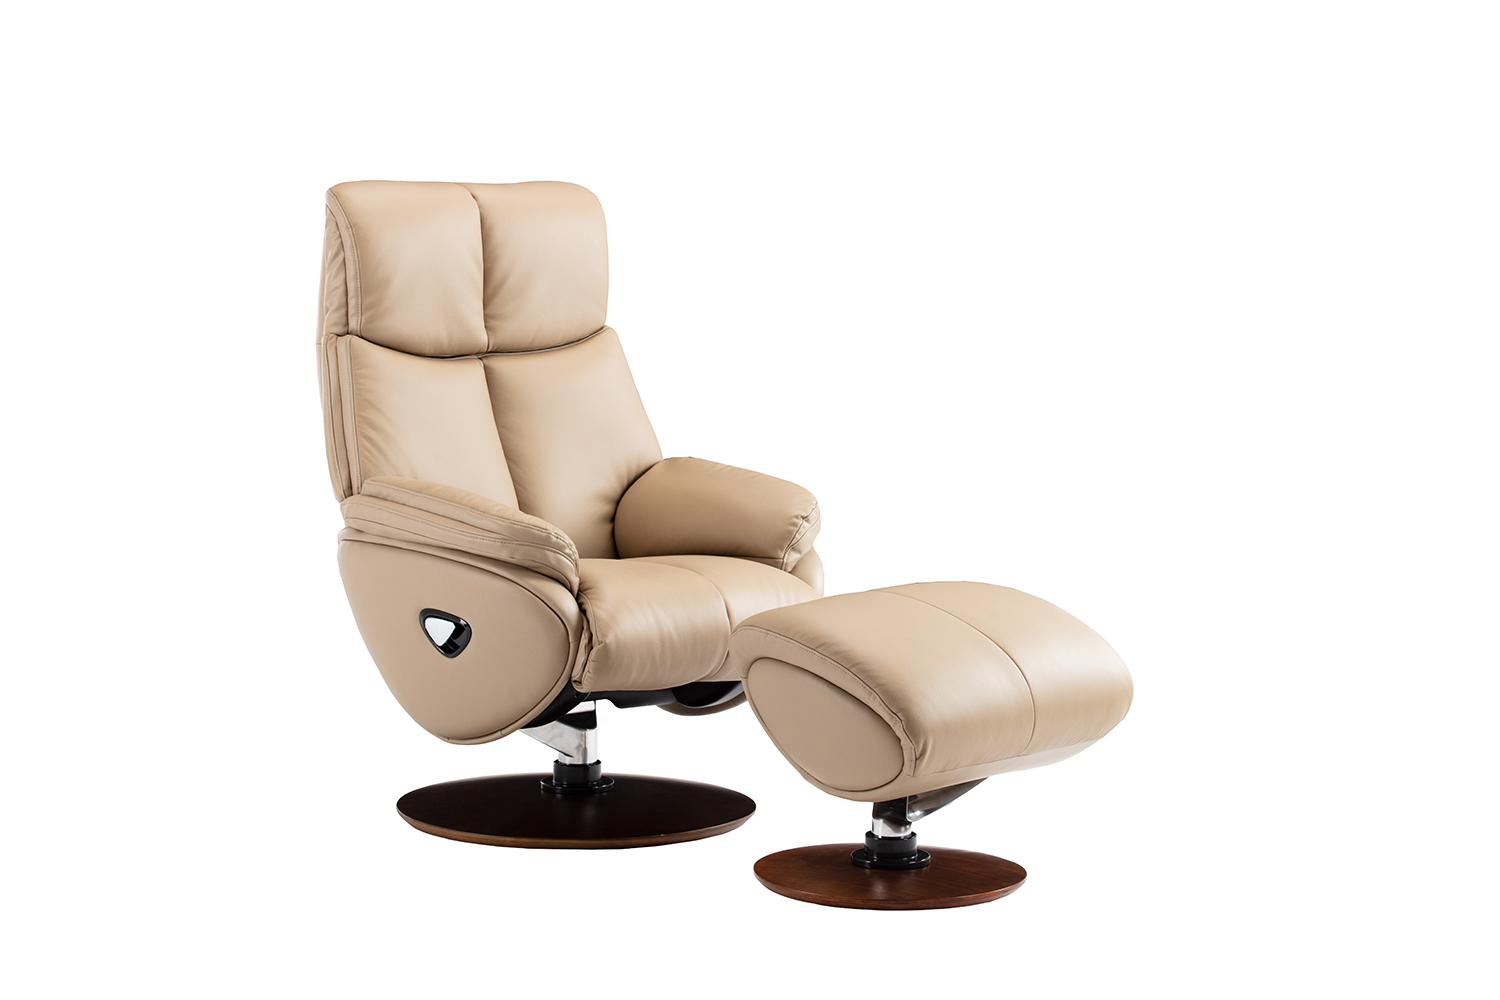 Barcalounger Alicia Pedestal Recliner Chair and Ottoman - Capri Nomad/Leather match